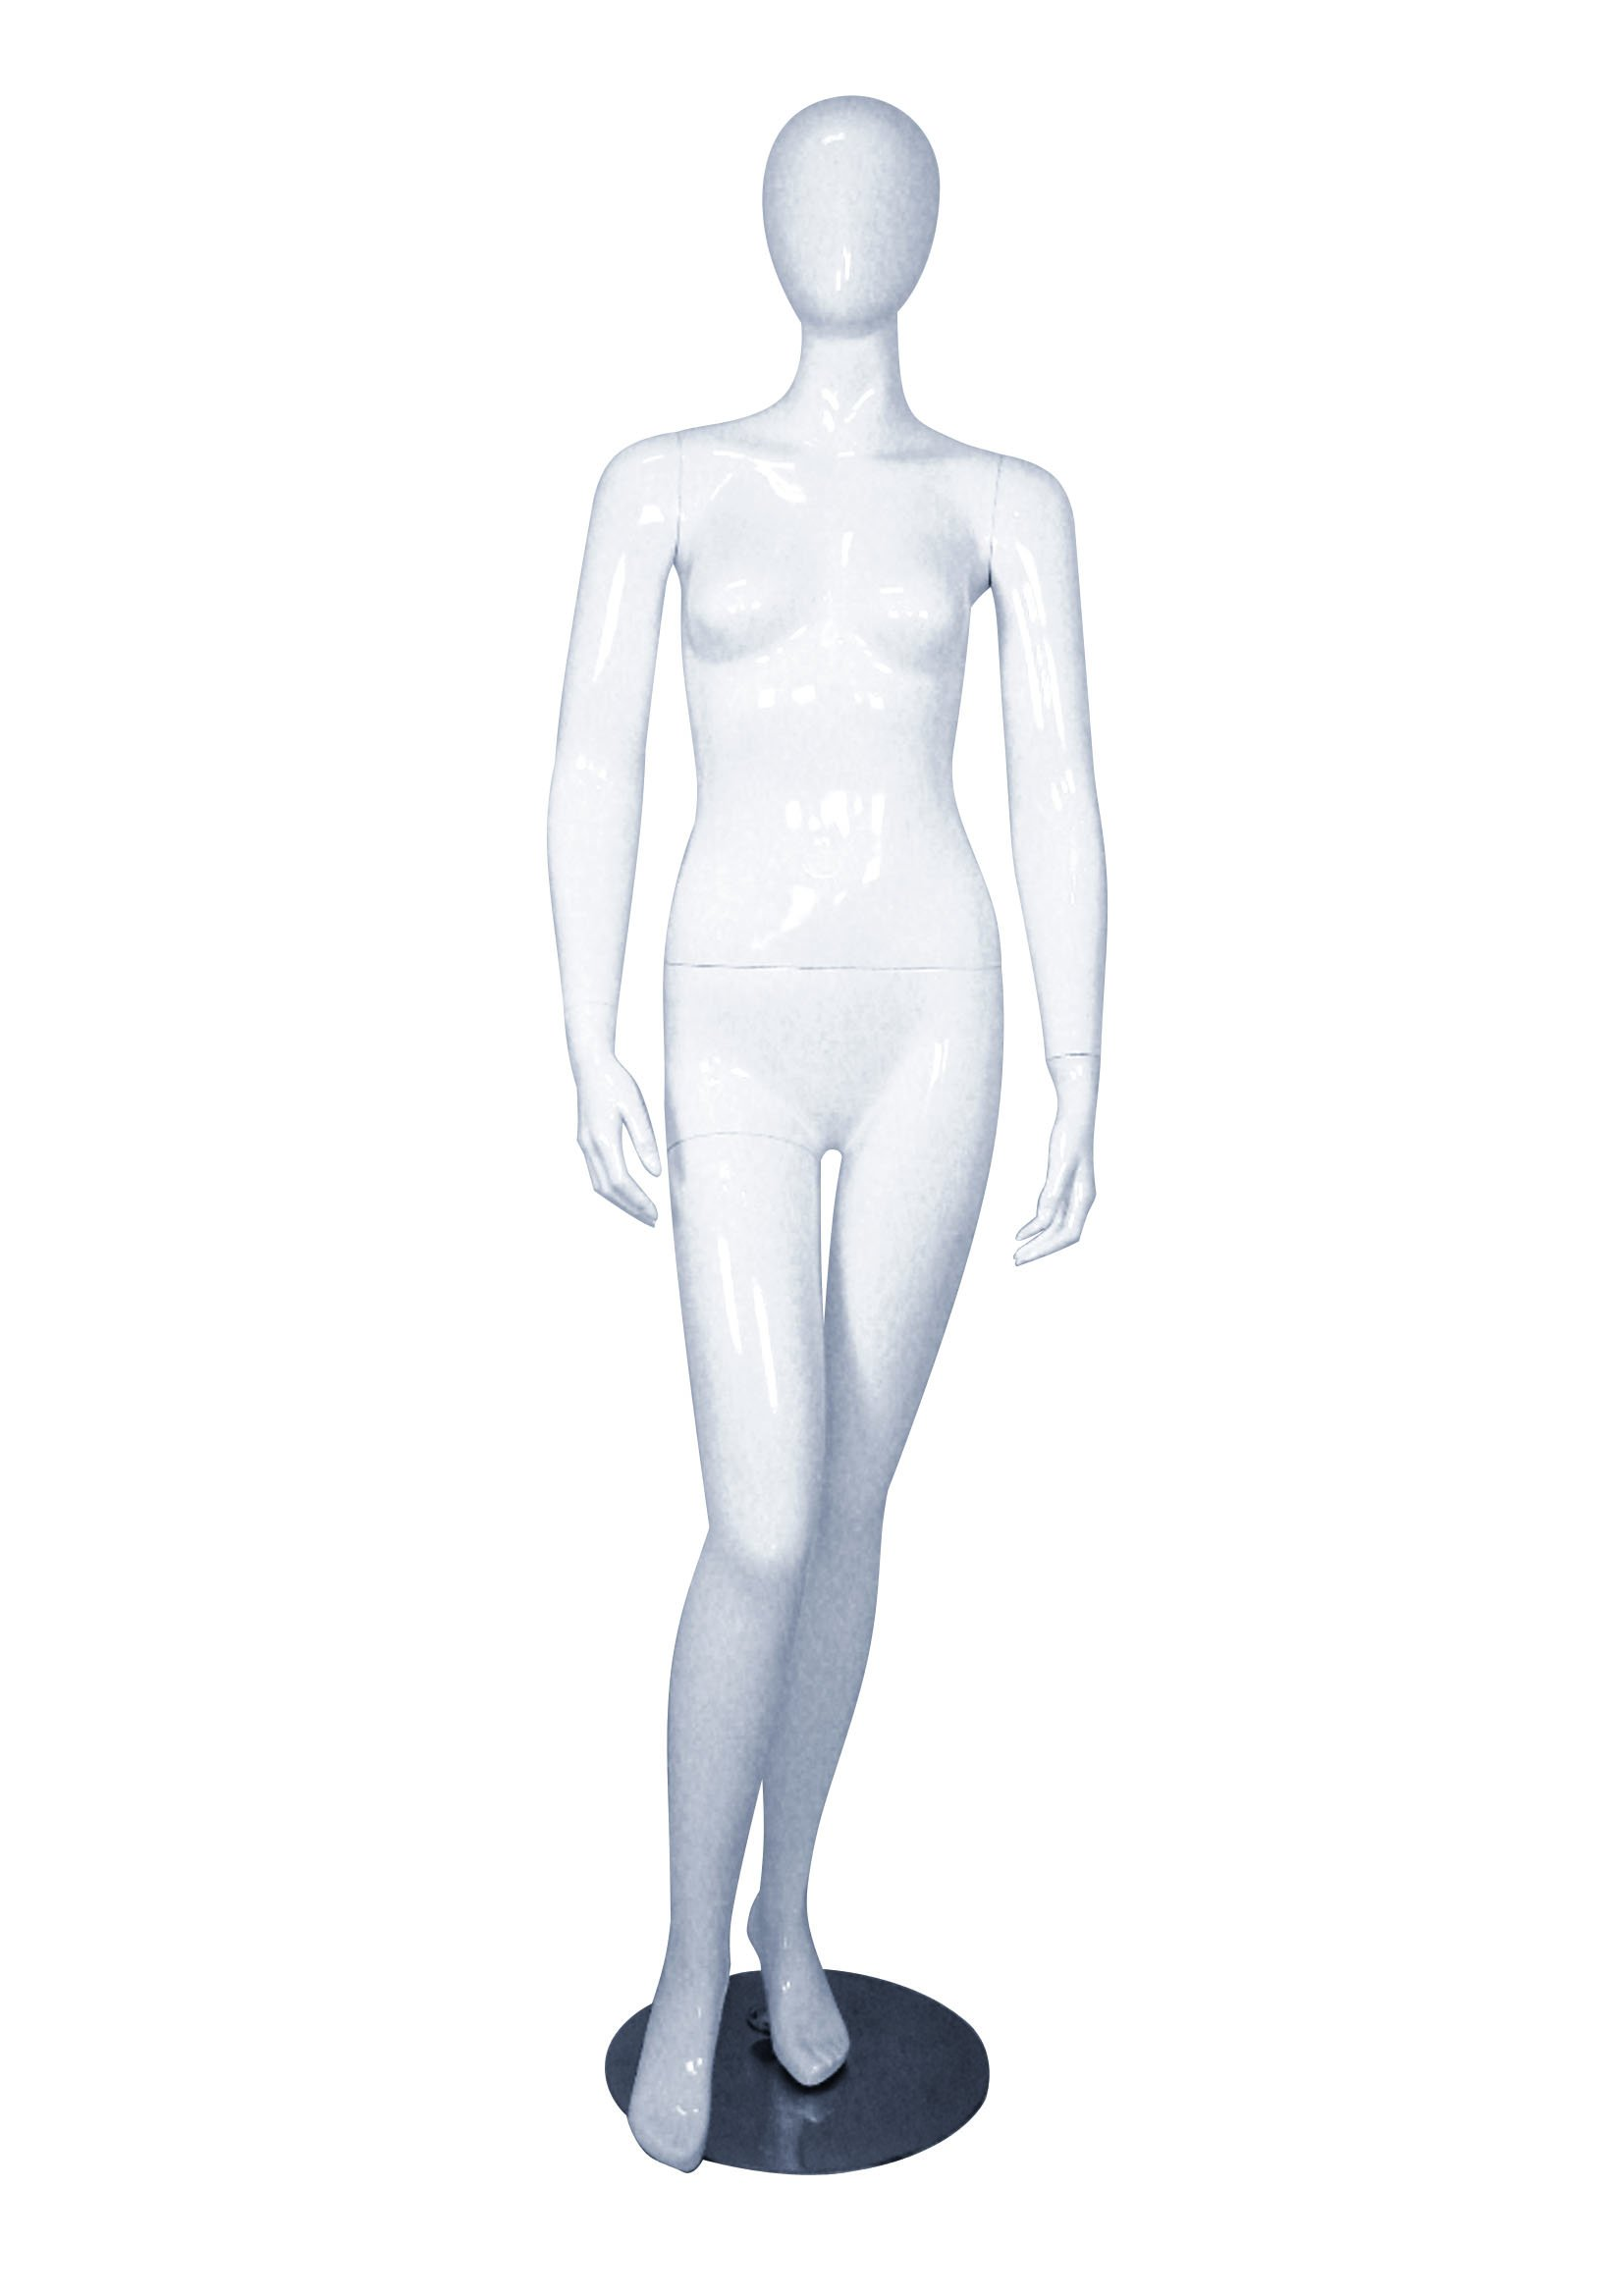 AMKO MICHELLE-1WHITE Female Mannequin with Head, Hands Down at Side, 32'', Glossy White